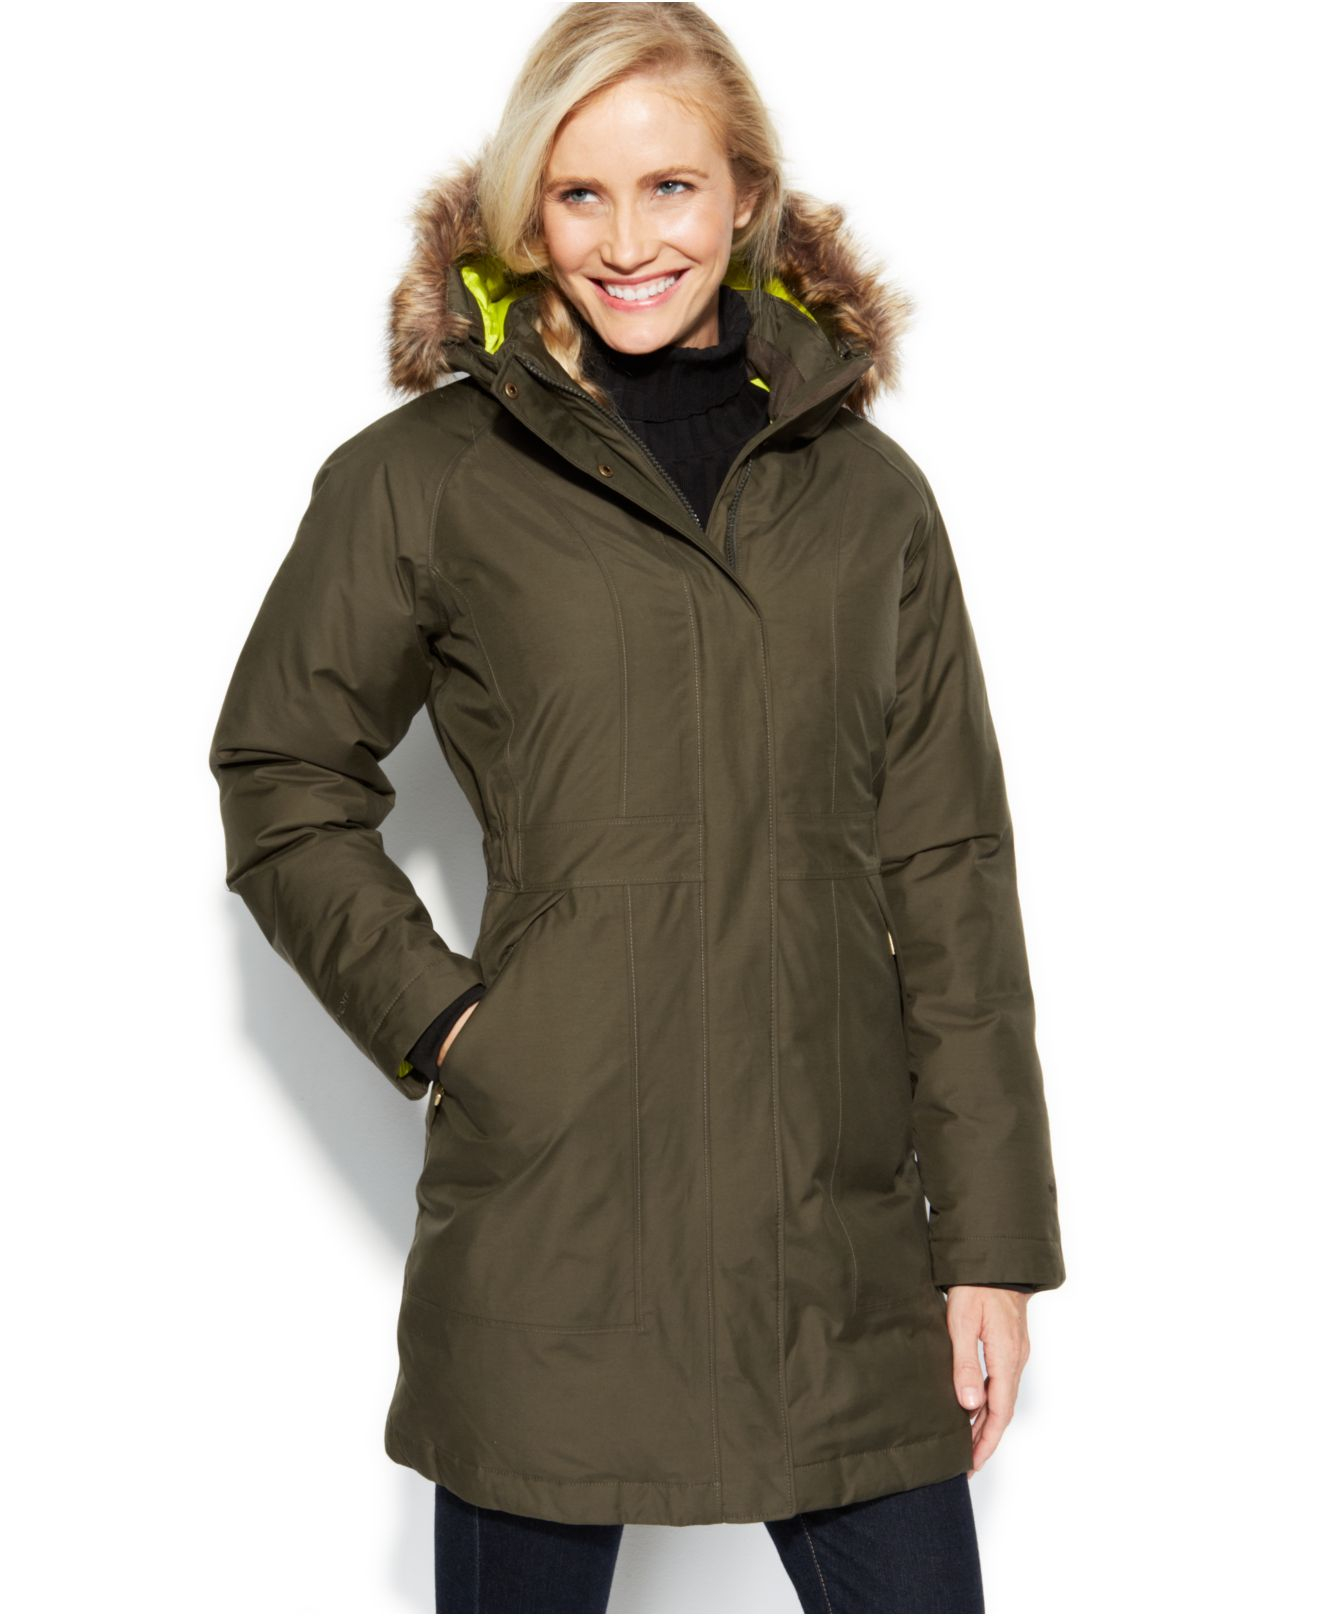 north face womens arctic down parka jacket for sale ...